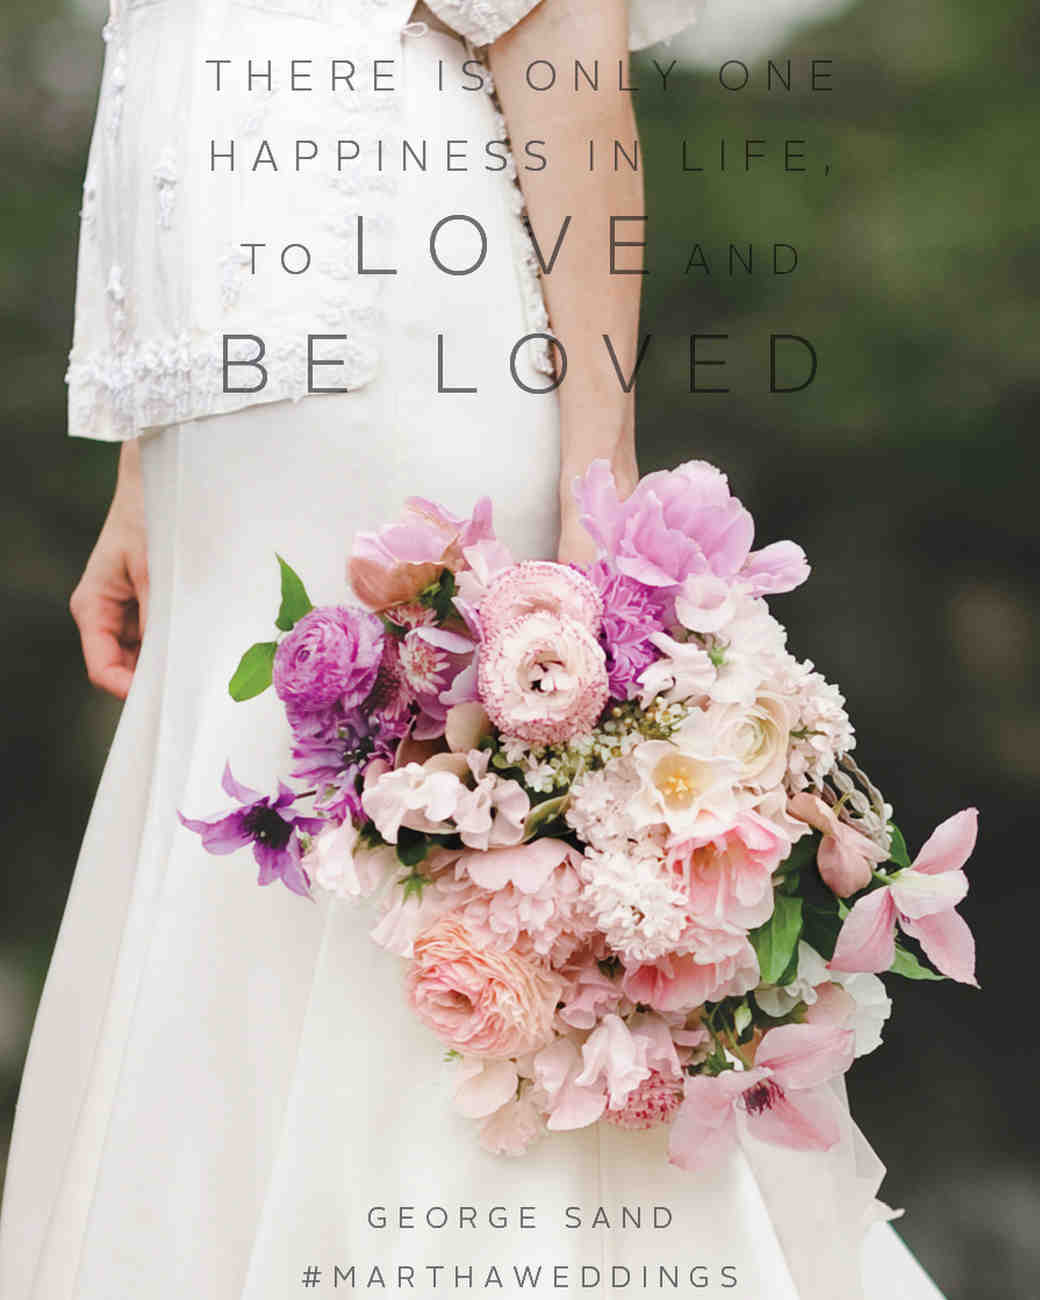 Flower Love Quotes Impressive The 20 Best Love Quotes Of All Time  Martha Stewart Weddings